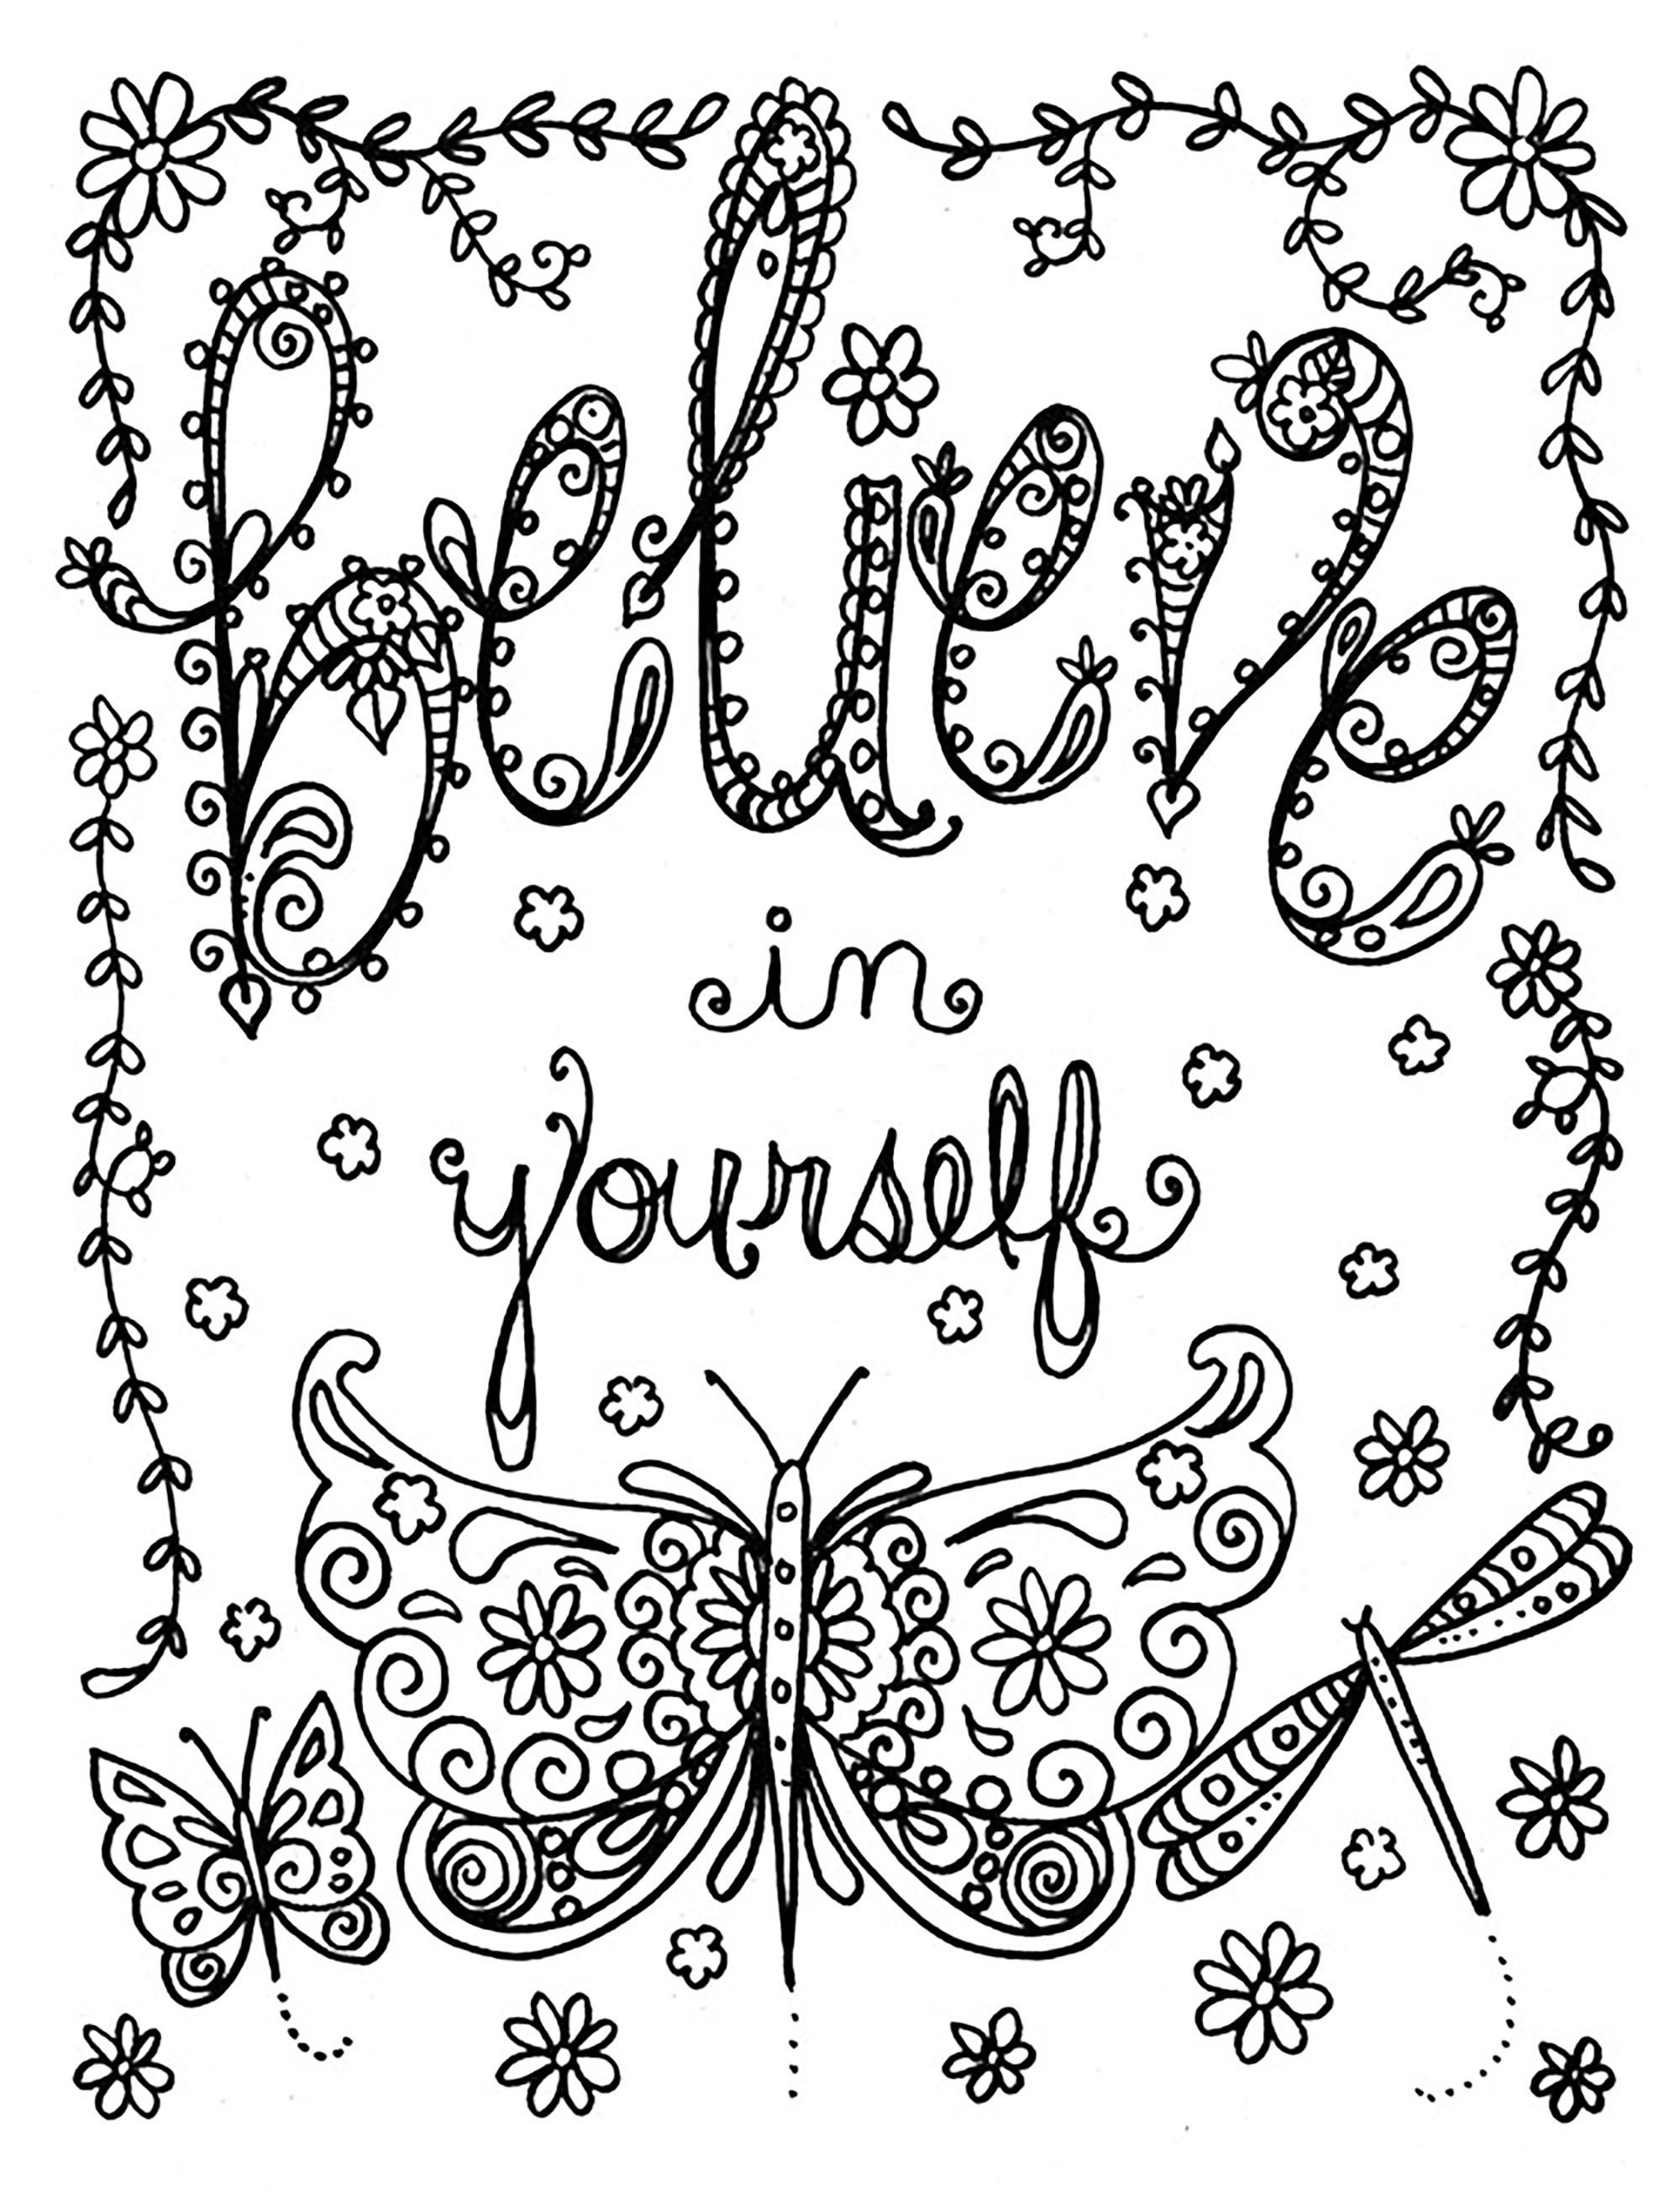 guaranteed relaxation with these complex zen and anti stress coloring pages for adults inspired